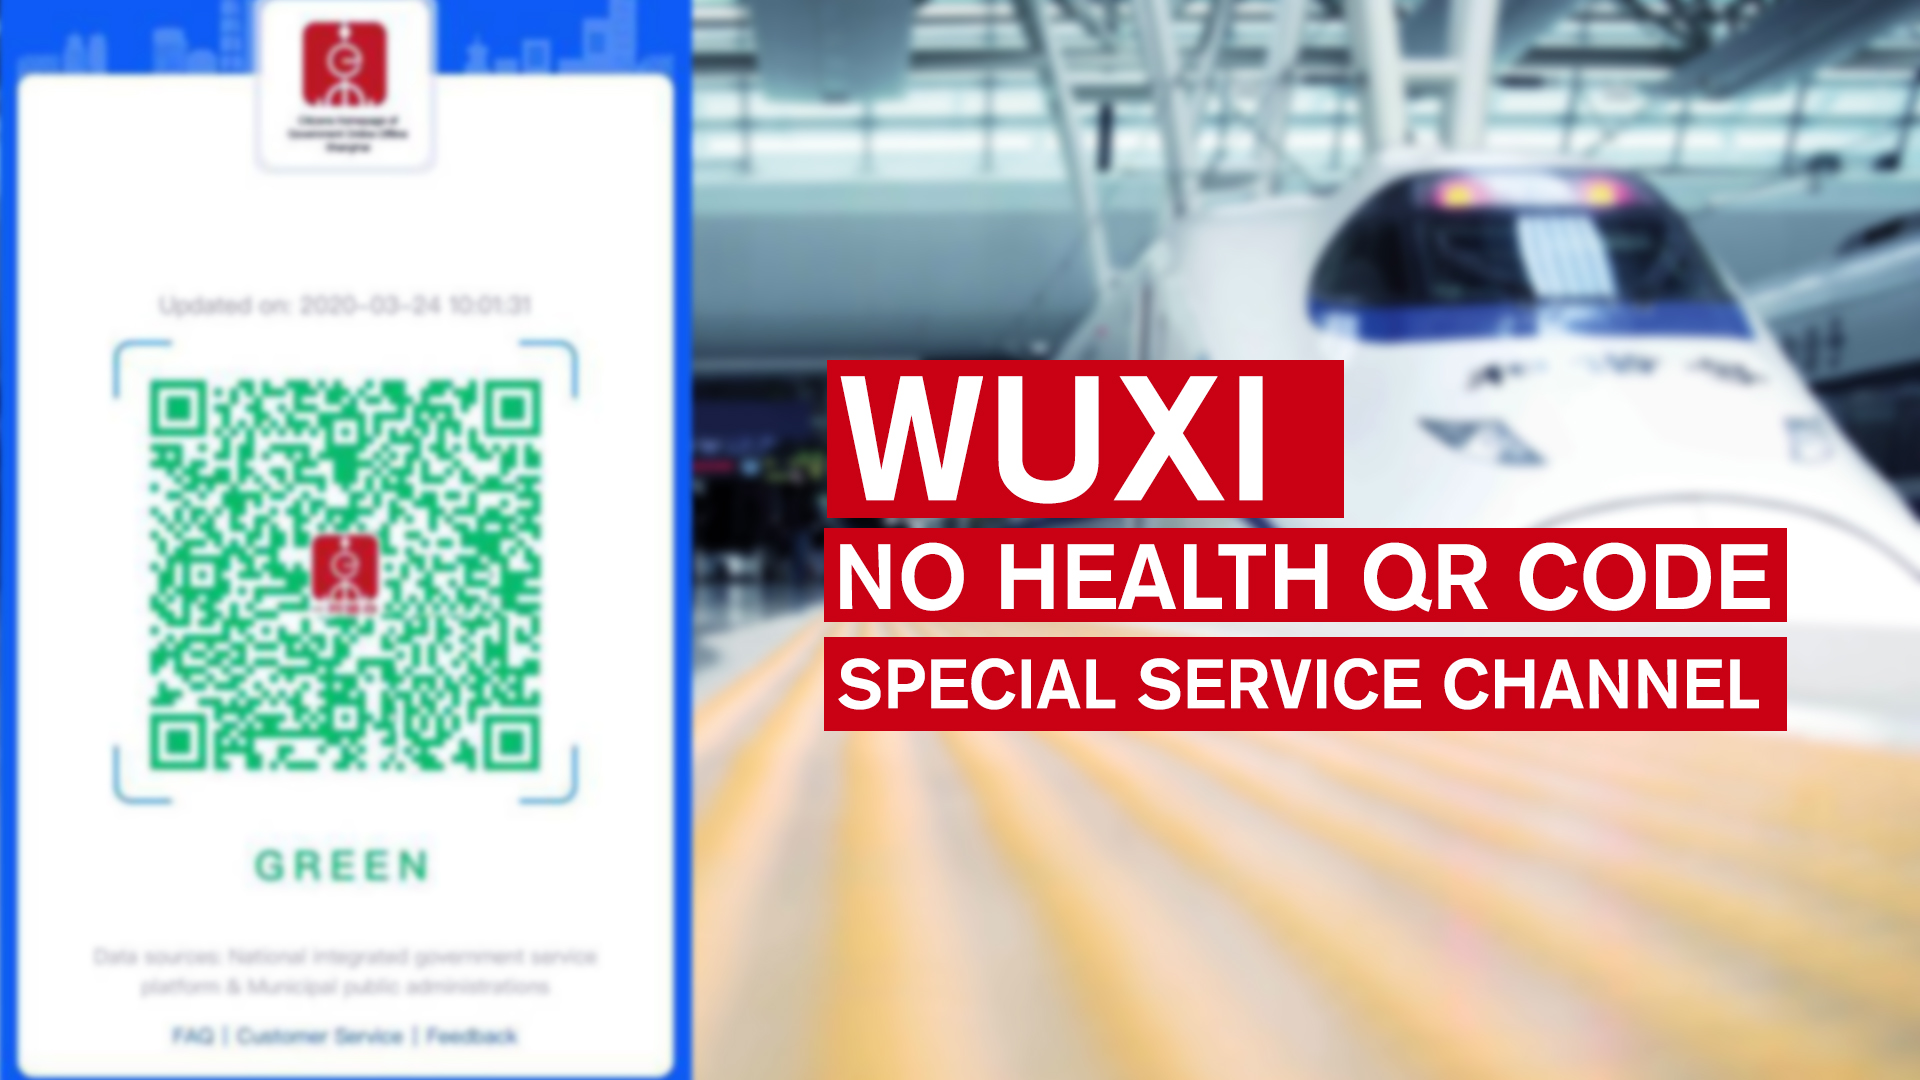 WUXI Railway Station. Special service channel created for the elderly and people without Health QR Code.